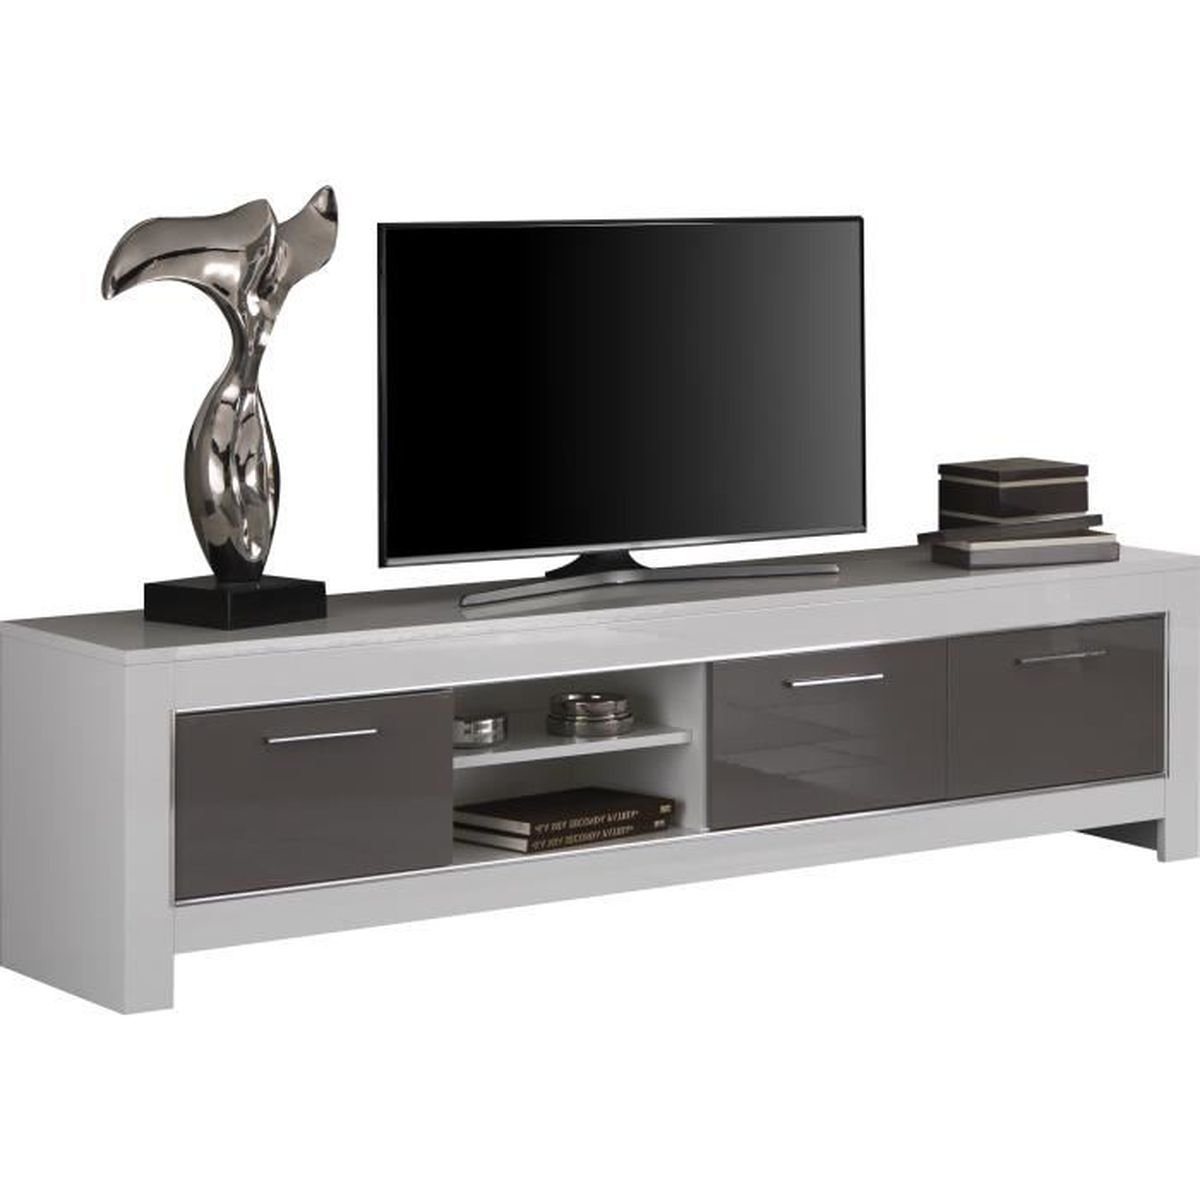 meuble tv design blanc et gris laqu brillant de 207 cm blanc et gris achat vente meuble tv. Black Bedroom Furniture Sets. Home Design Ideas